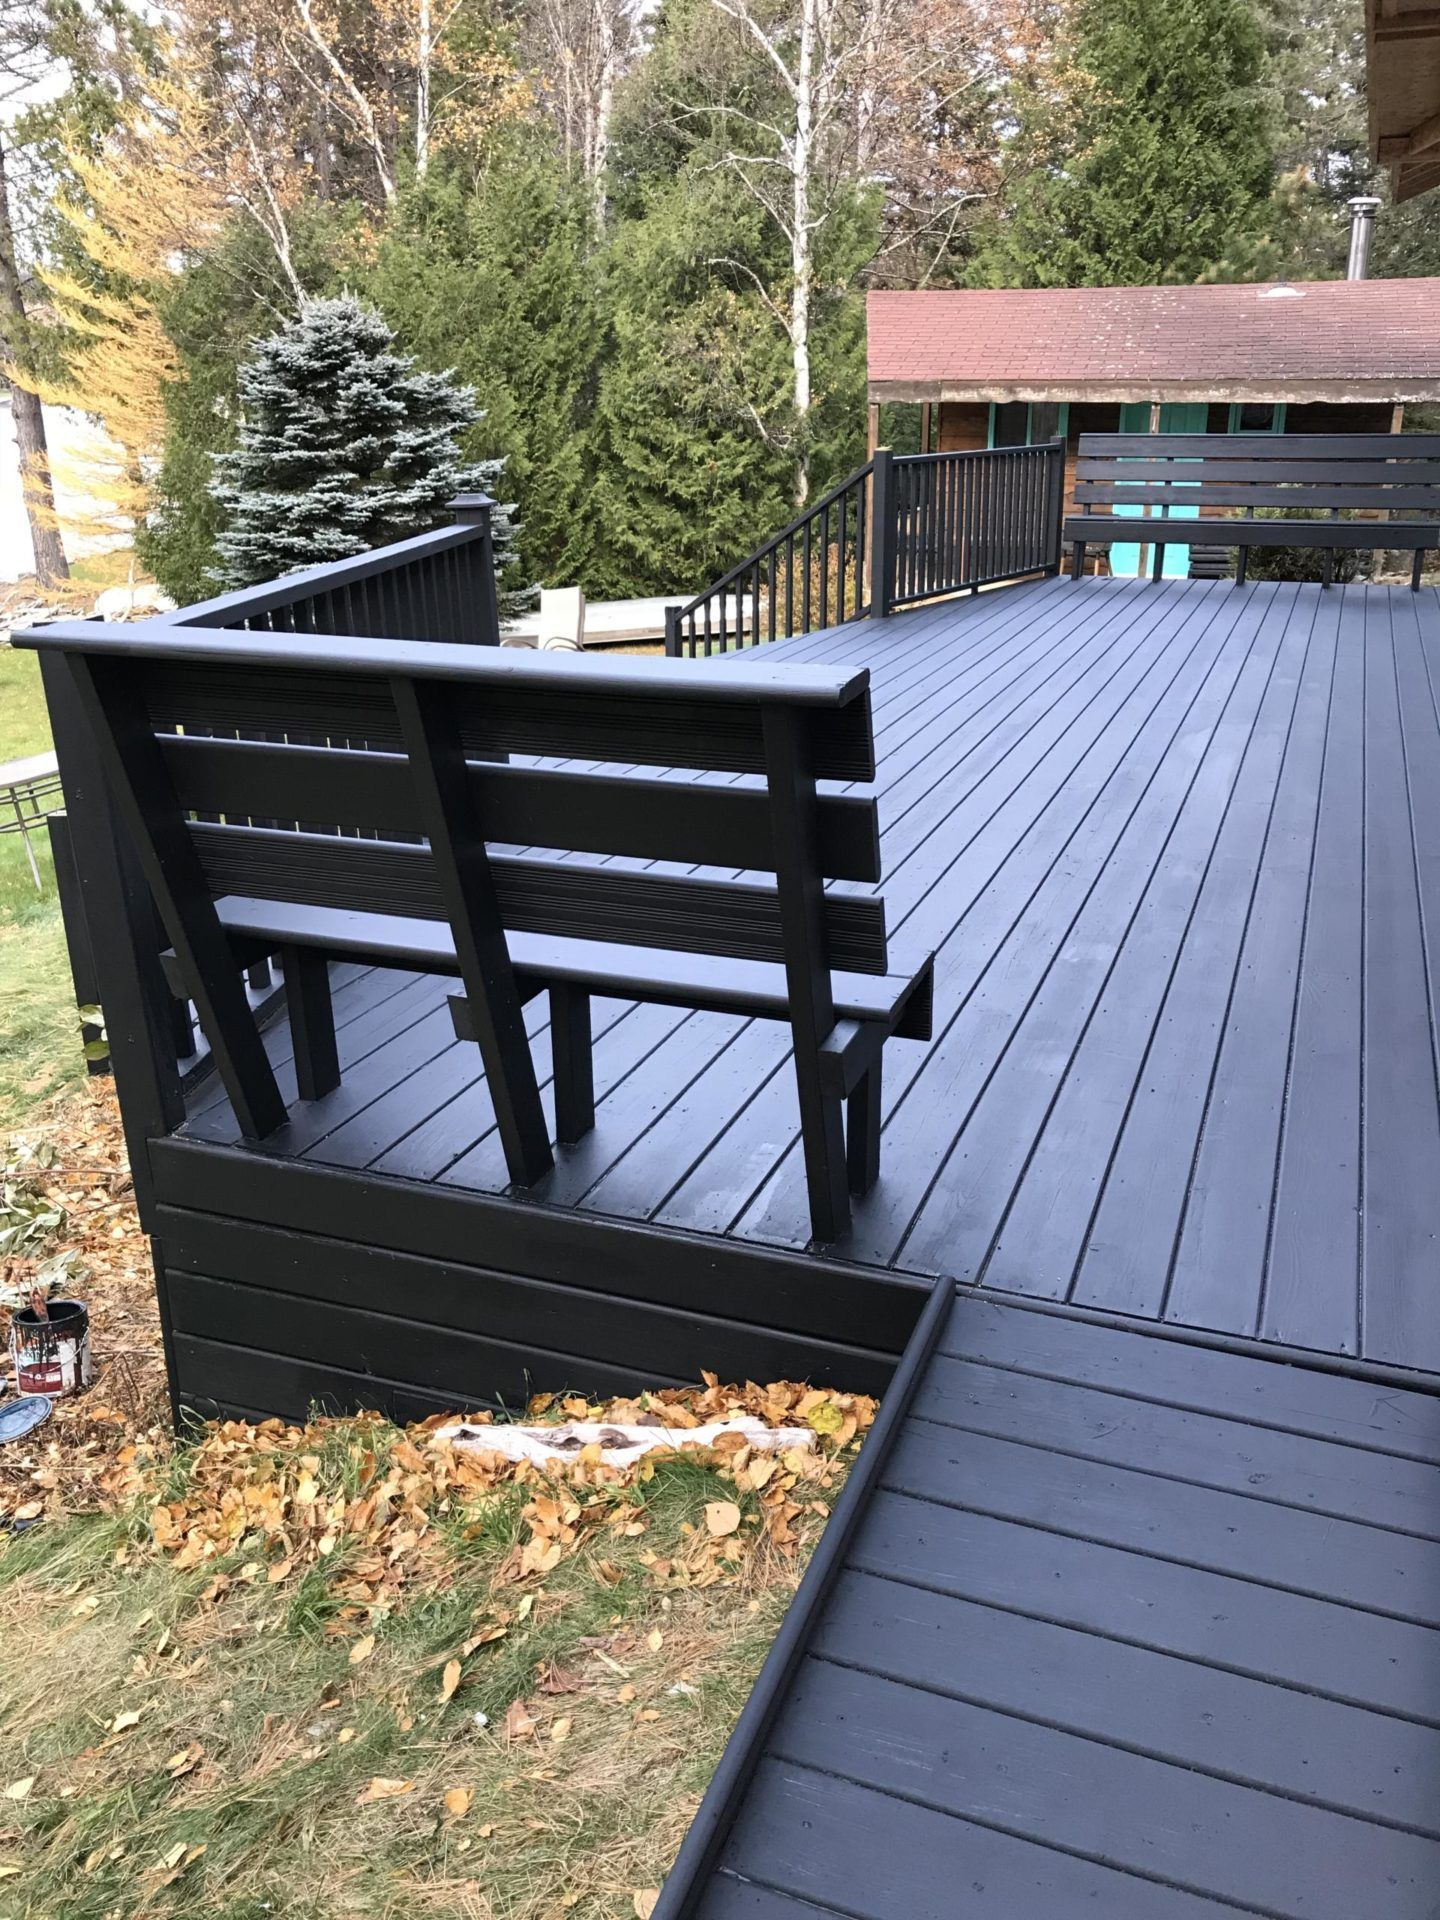 The Best Wooden Deck Design Ideas For Your Outdoors Patios 27